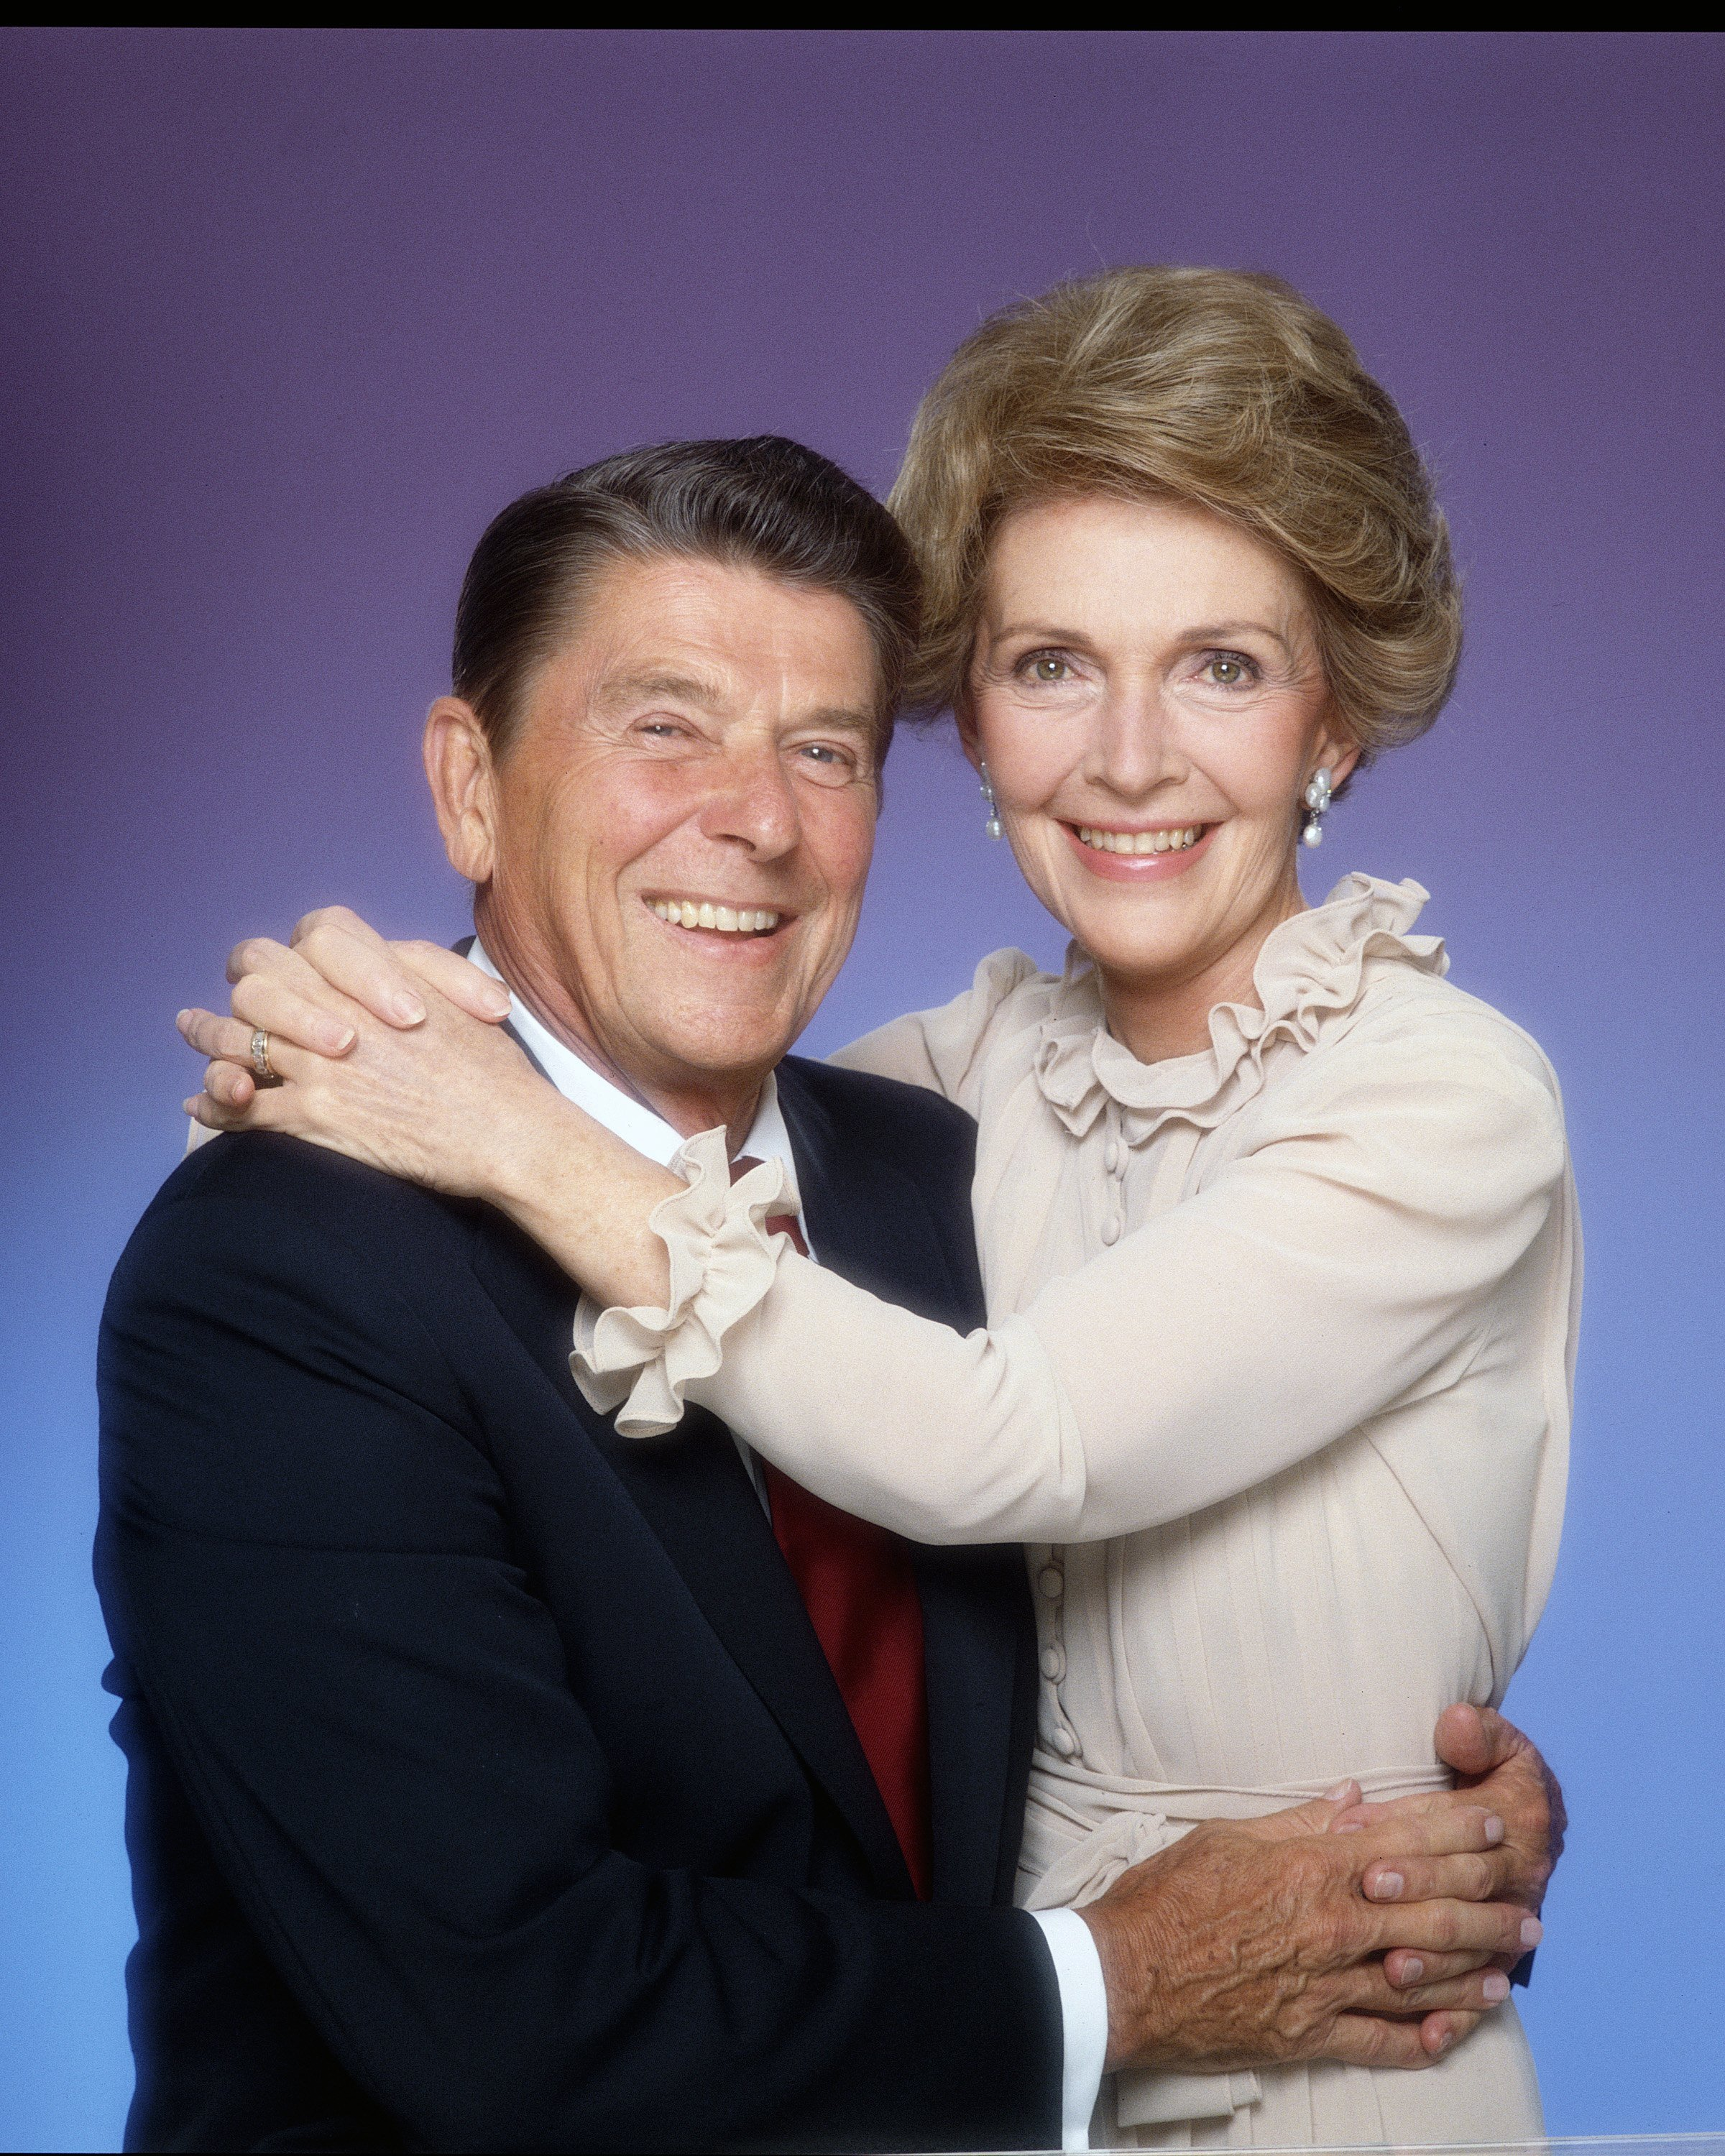 President Ronald Reagan and his wife Nancy pose for a portrait Session in January, 1981 in Los Angeles, California. | Source: Getty Images